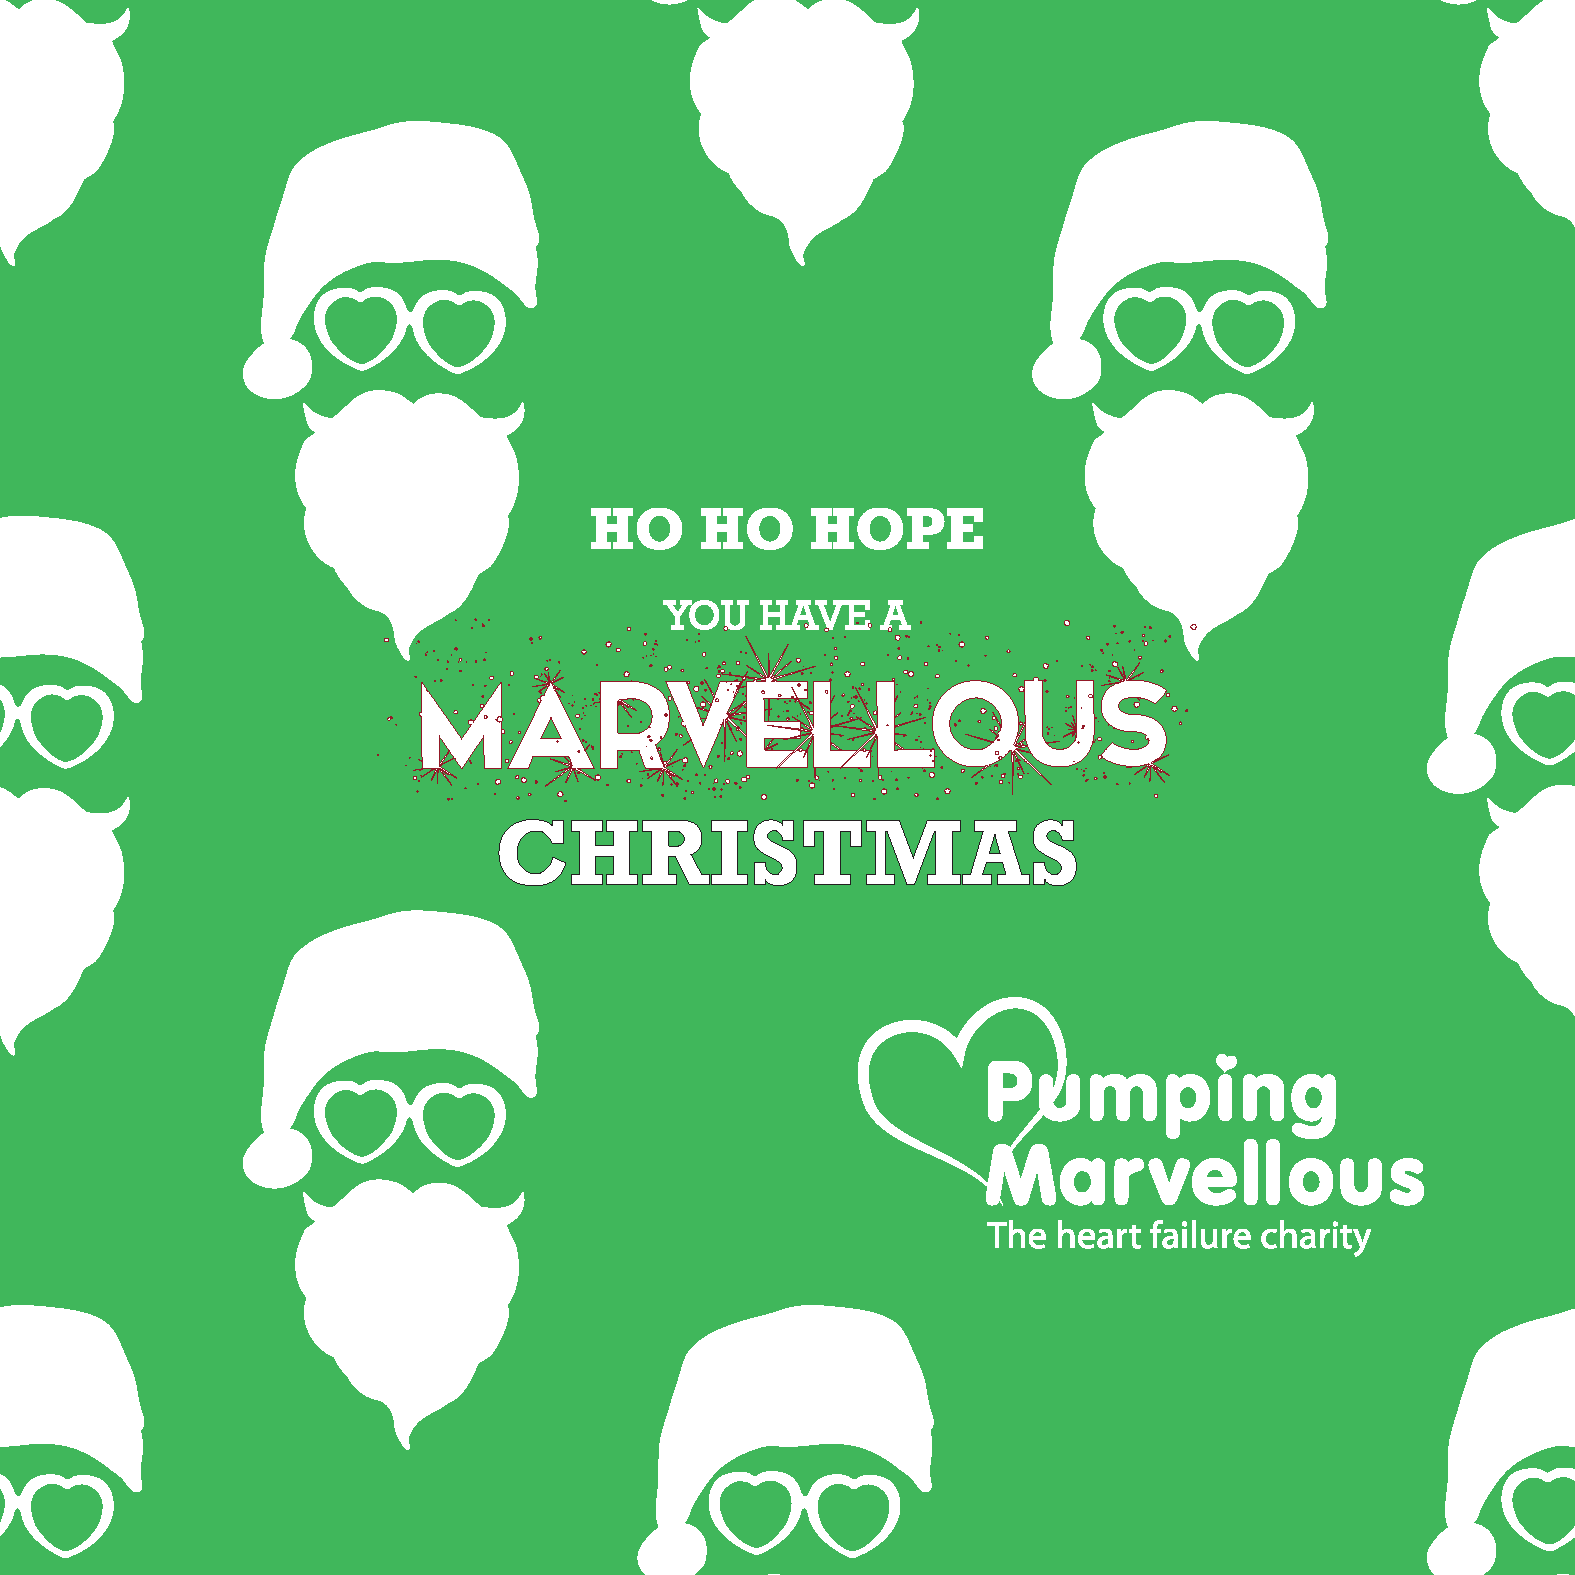 Pumping Marvellous DIGITAL Christmas Card 2017 Green